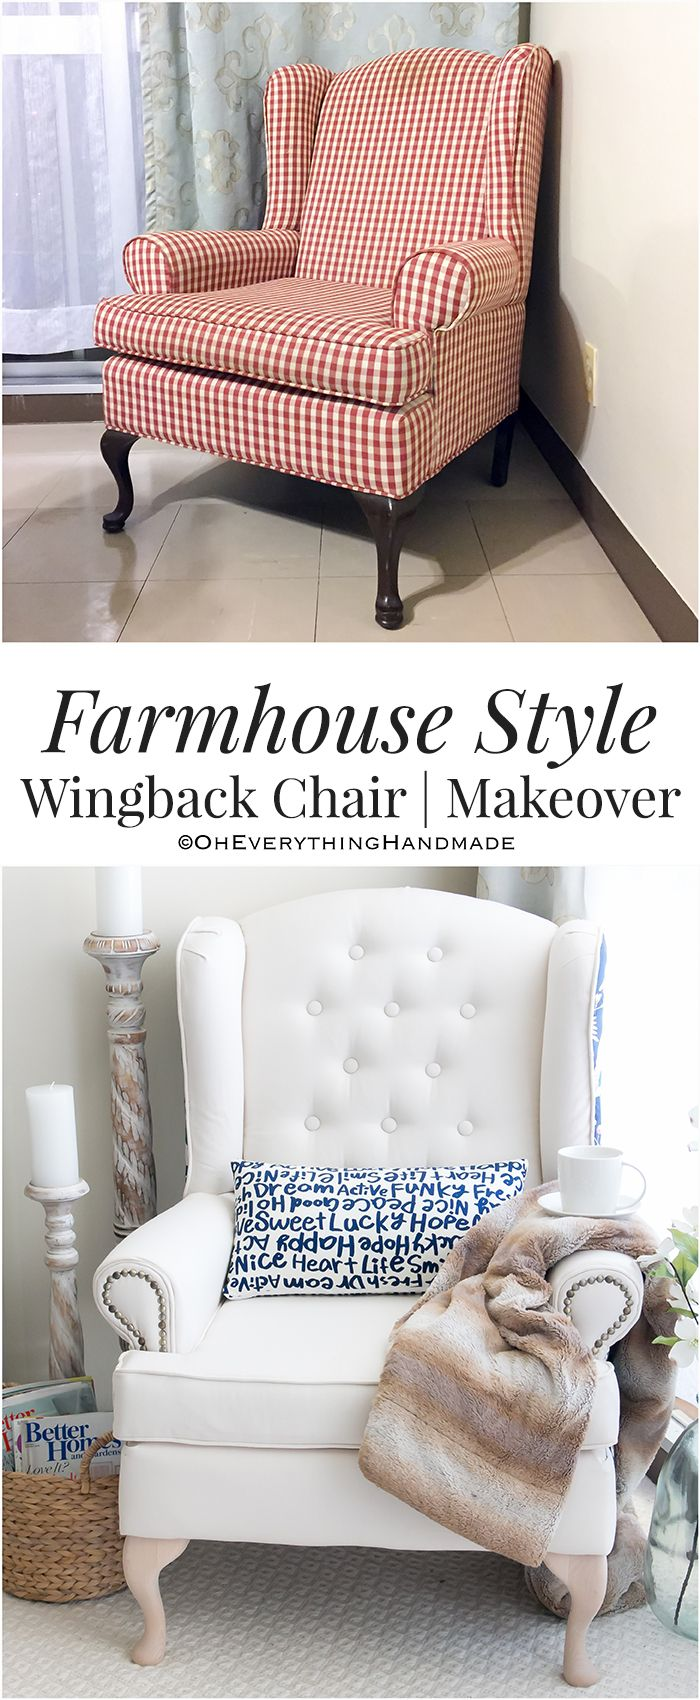 Custom modern chippendale wing chair by ethan allen at 1stdibs - Farmhouse Style Wingback Chair Makeover